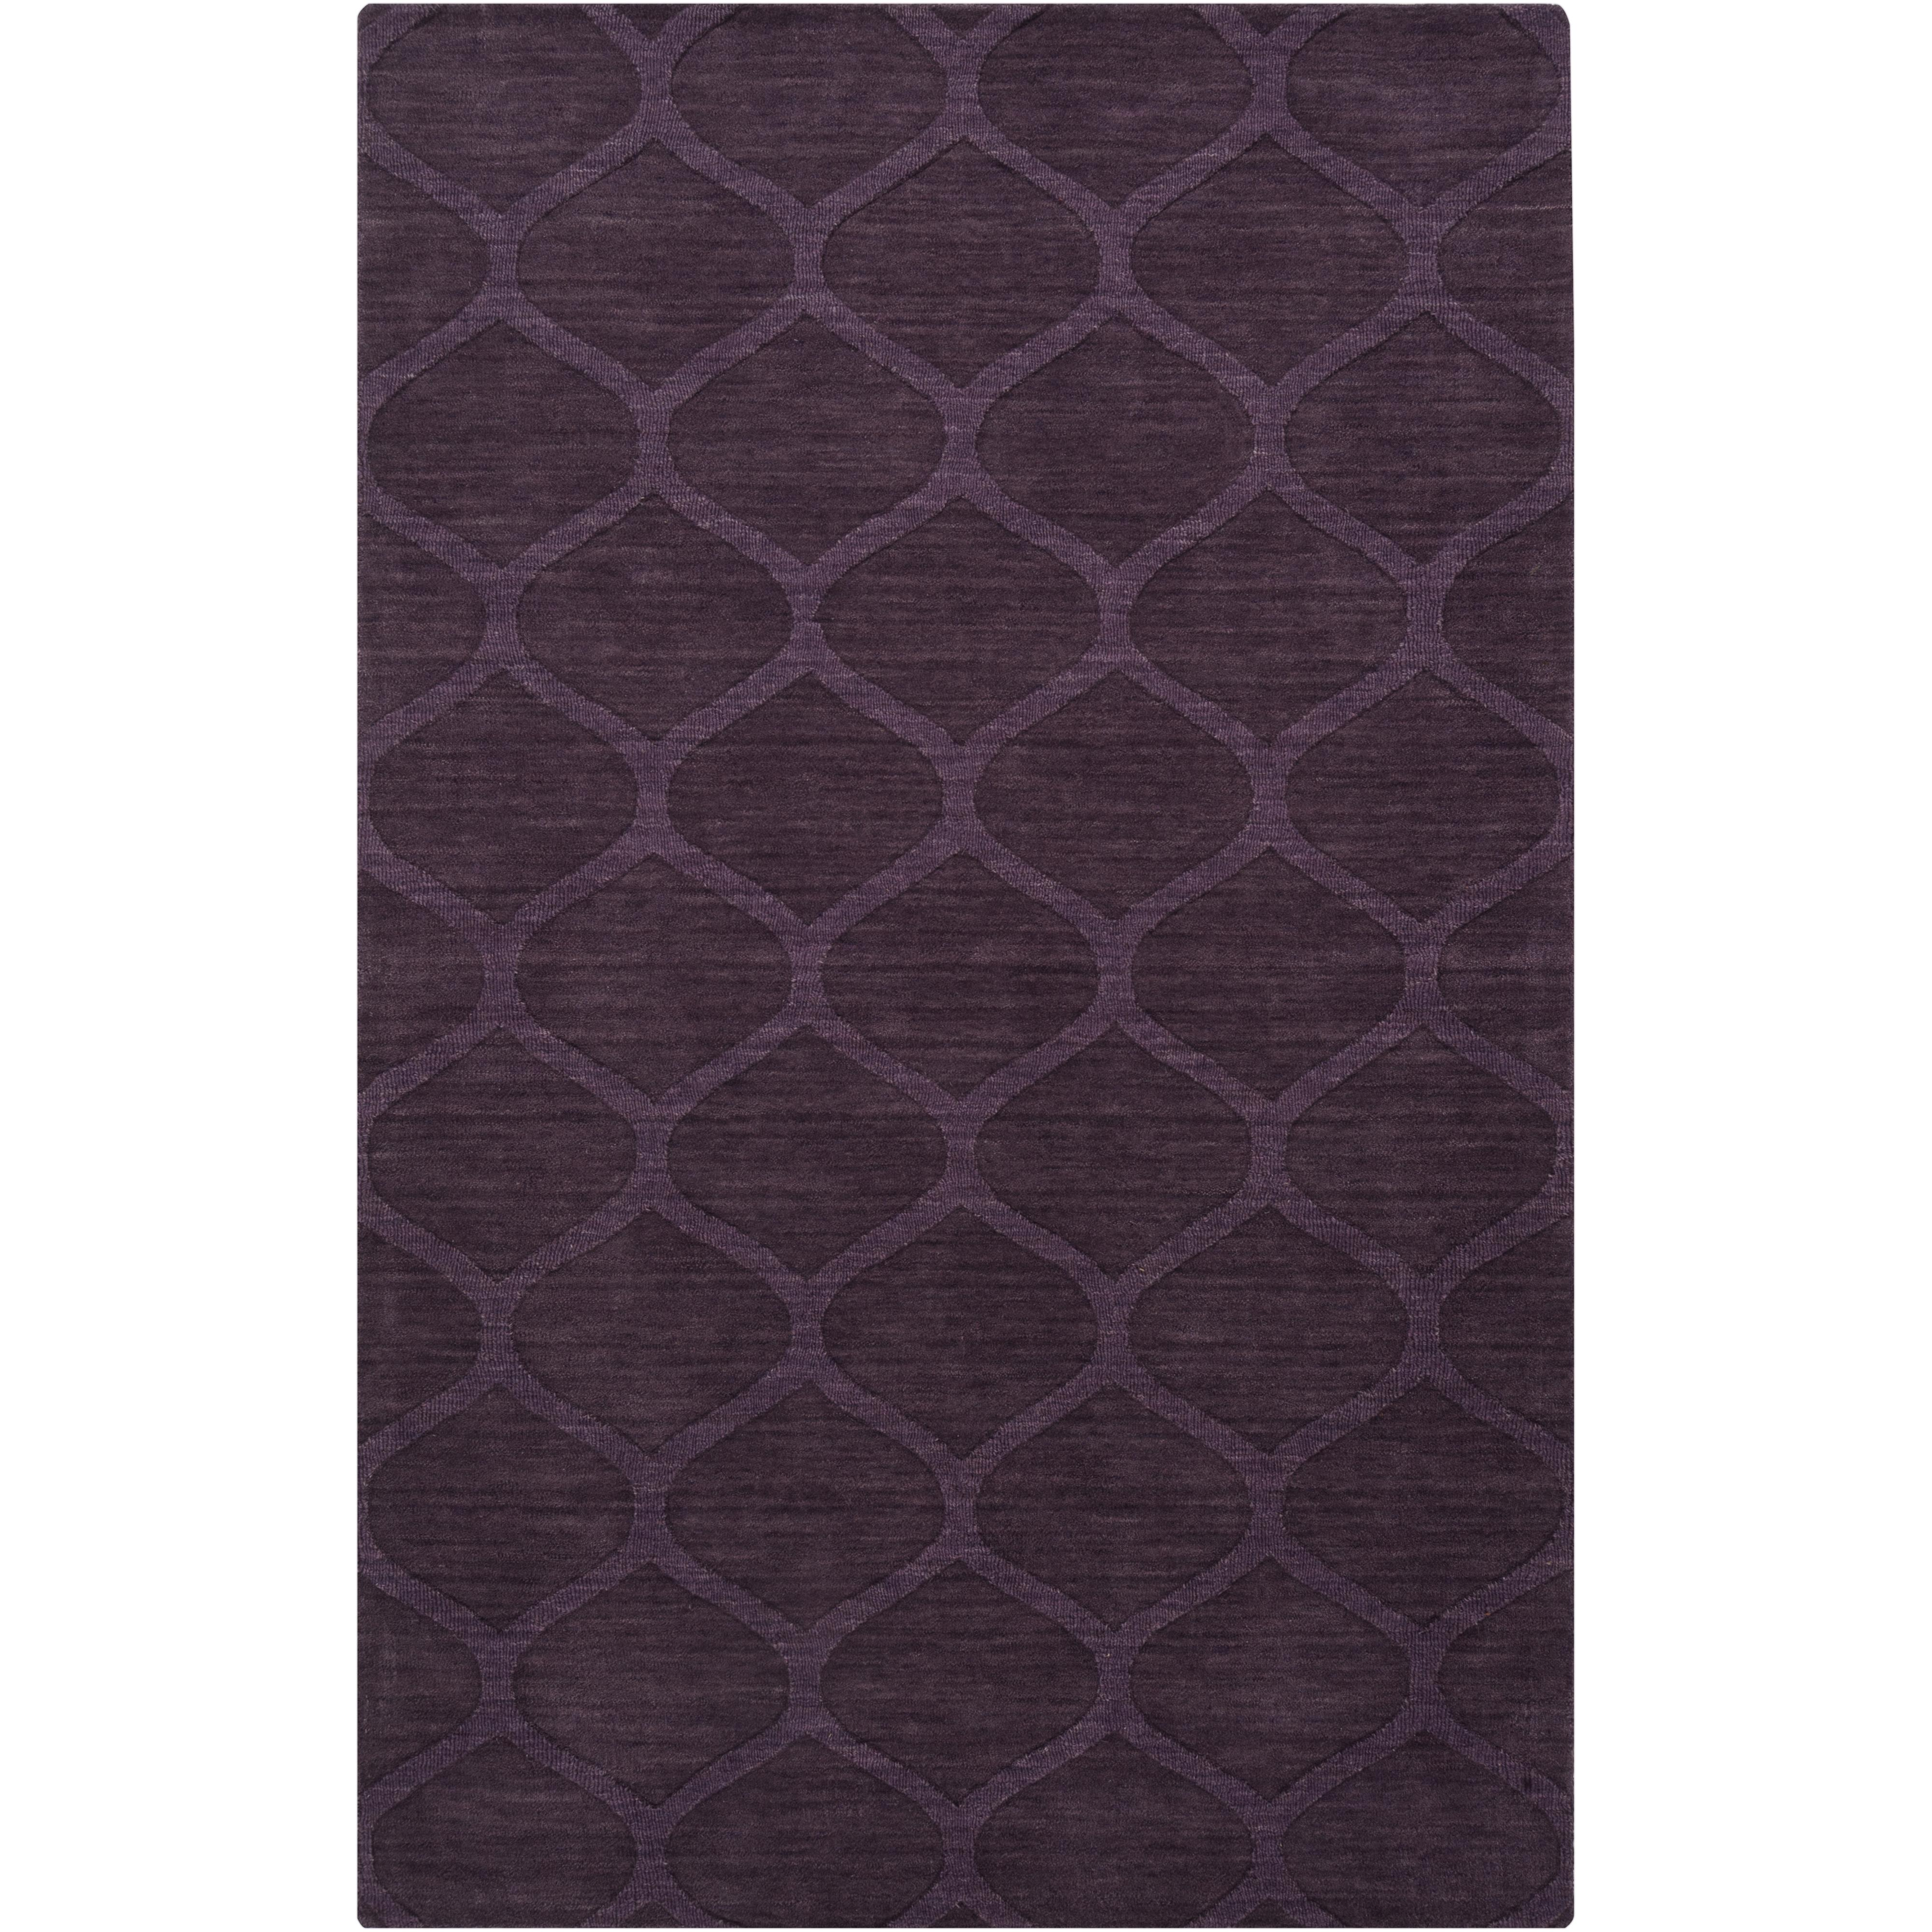 "Surya Rugs Mystique 3'3"" x 5'3"" - Item Number: M5119-3353"